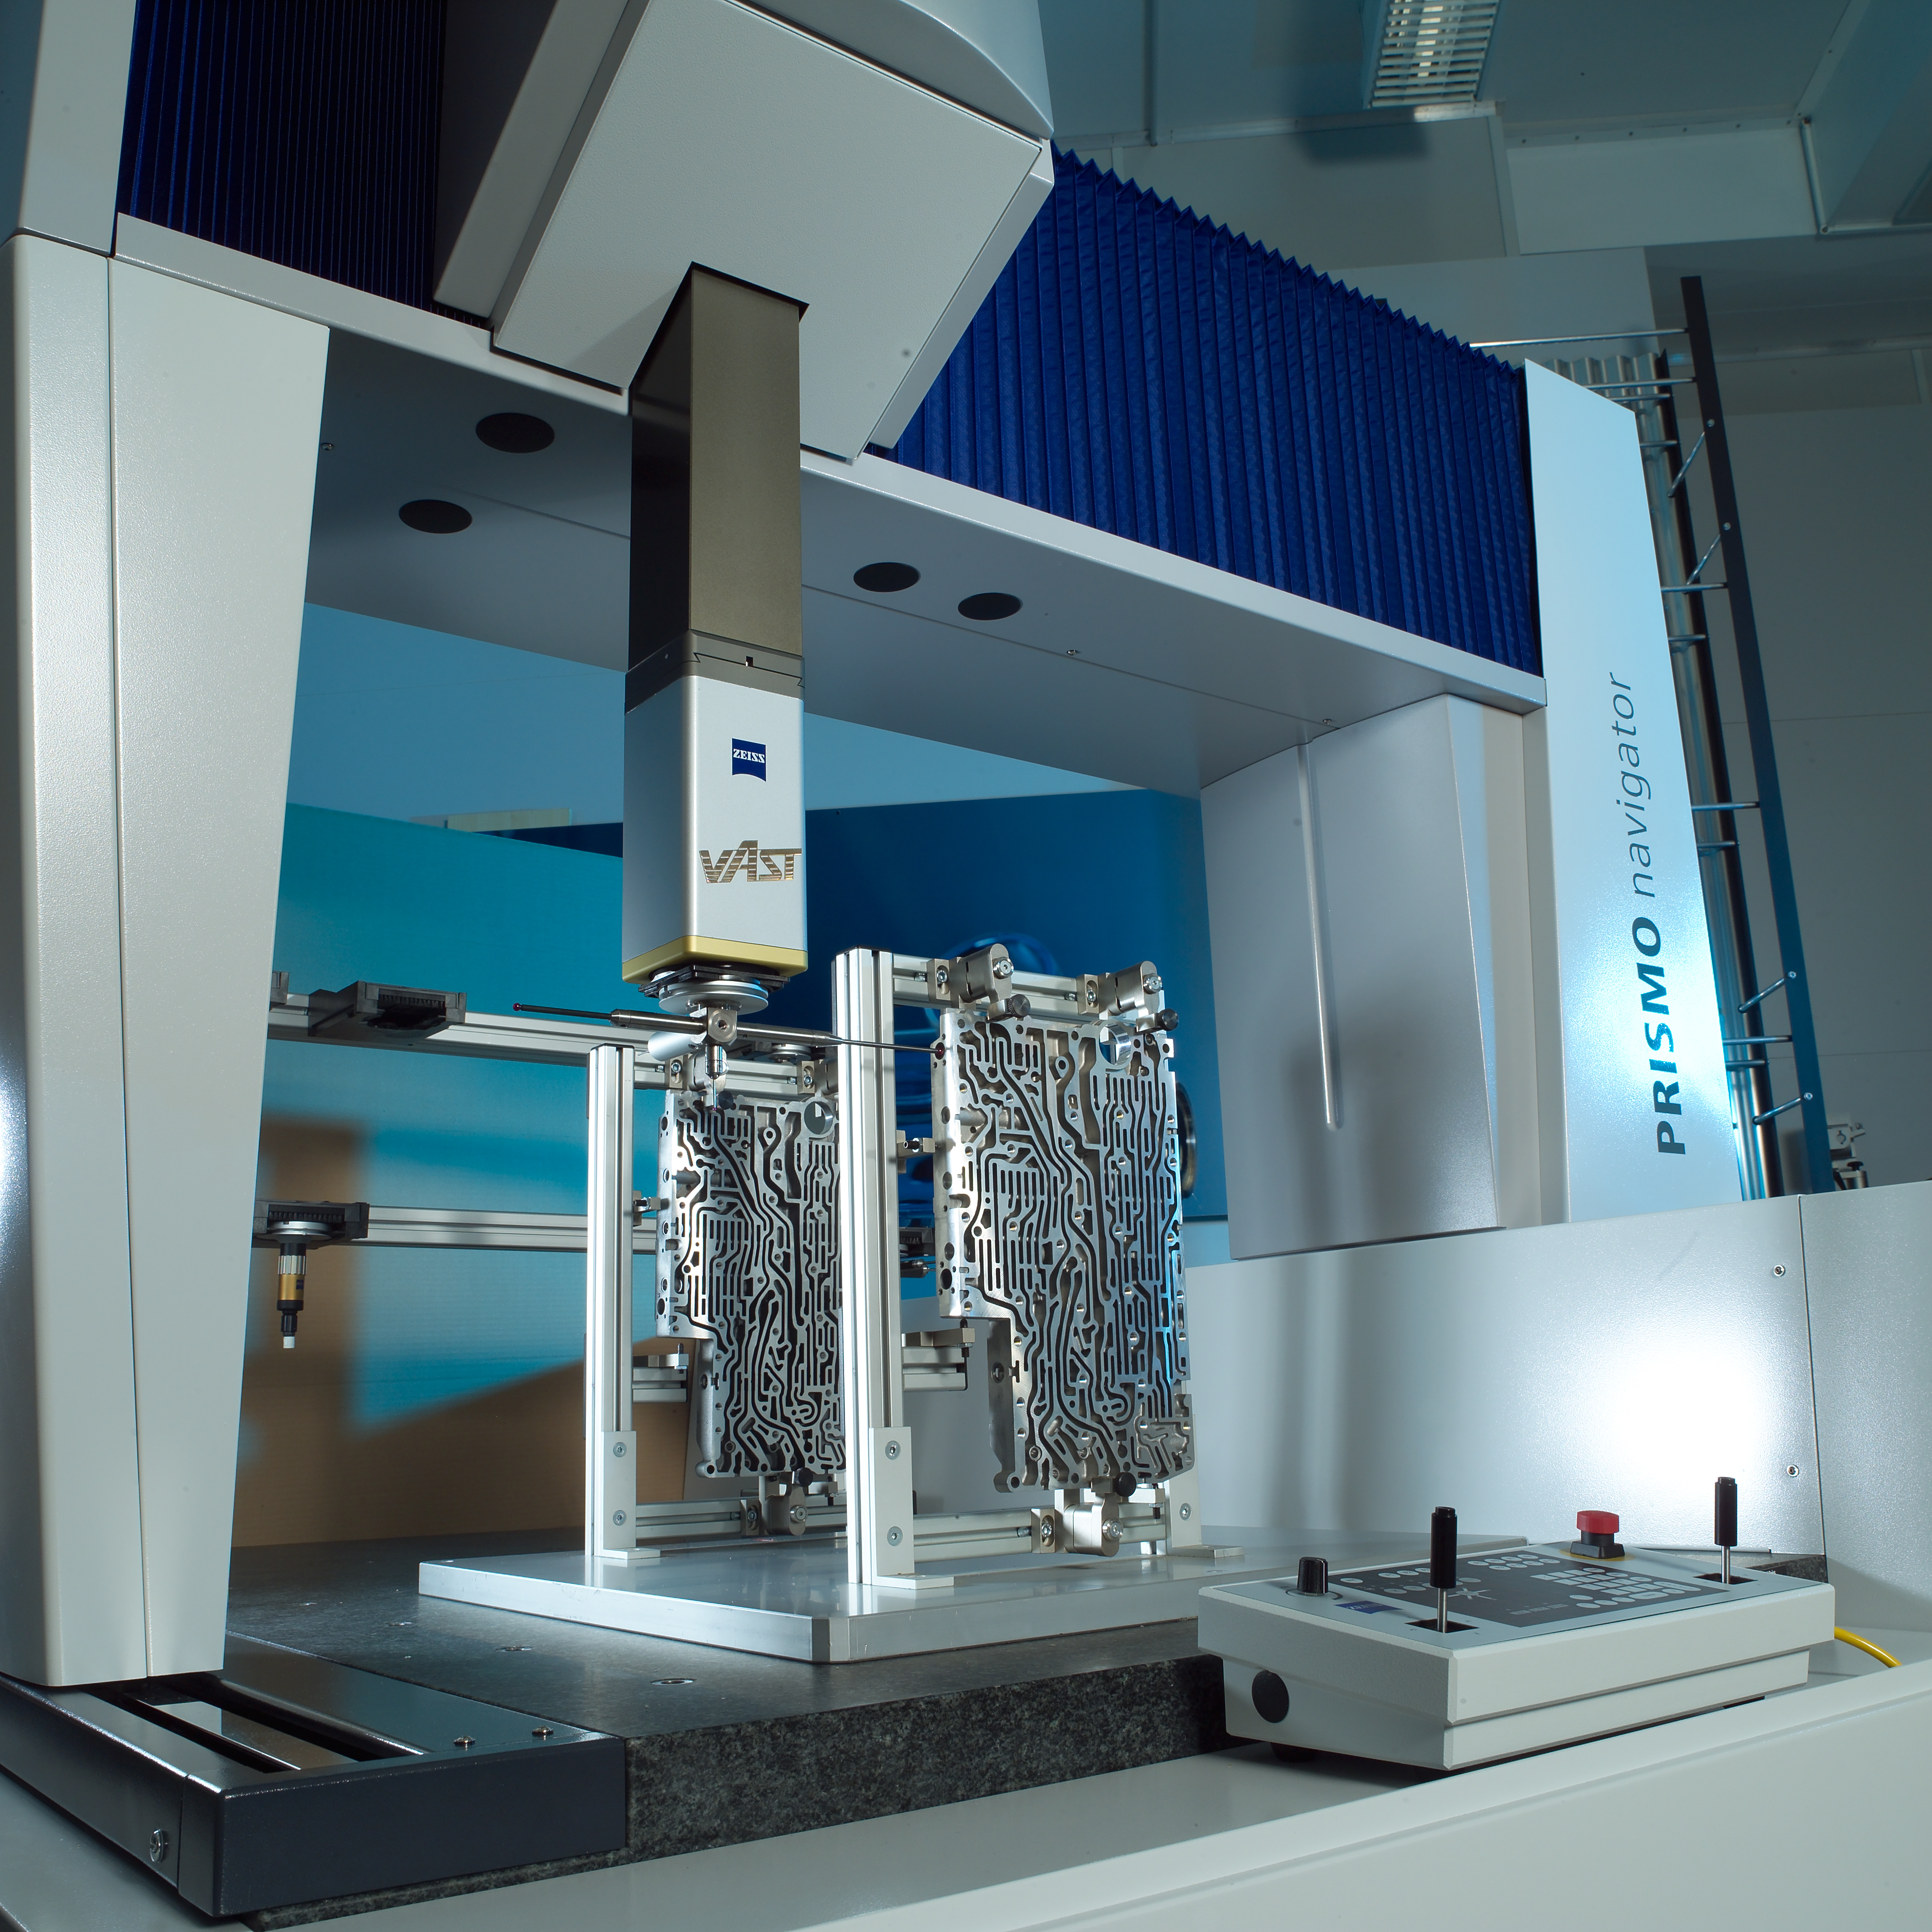 GOIMEK acquires the Zeiss Prismo Navigator machine for high precision measurements.